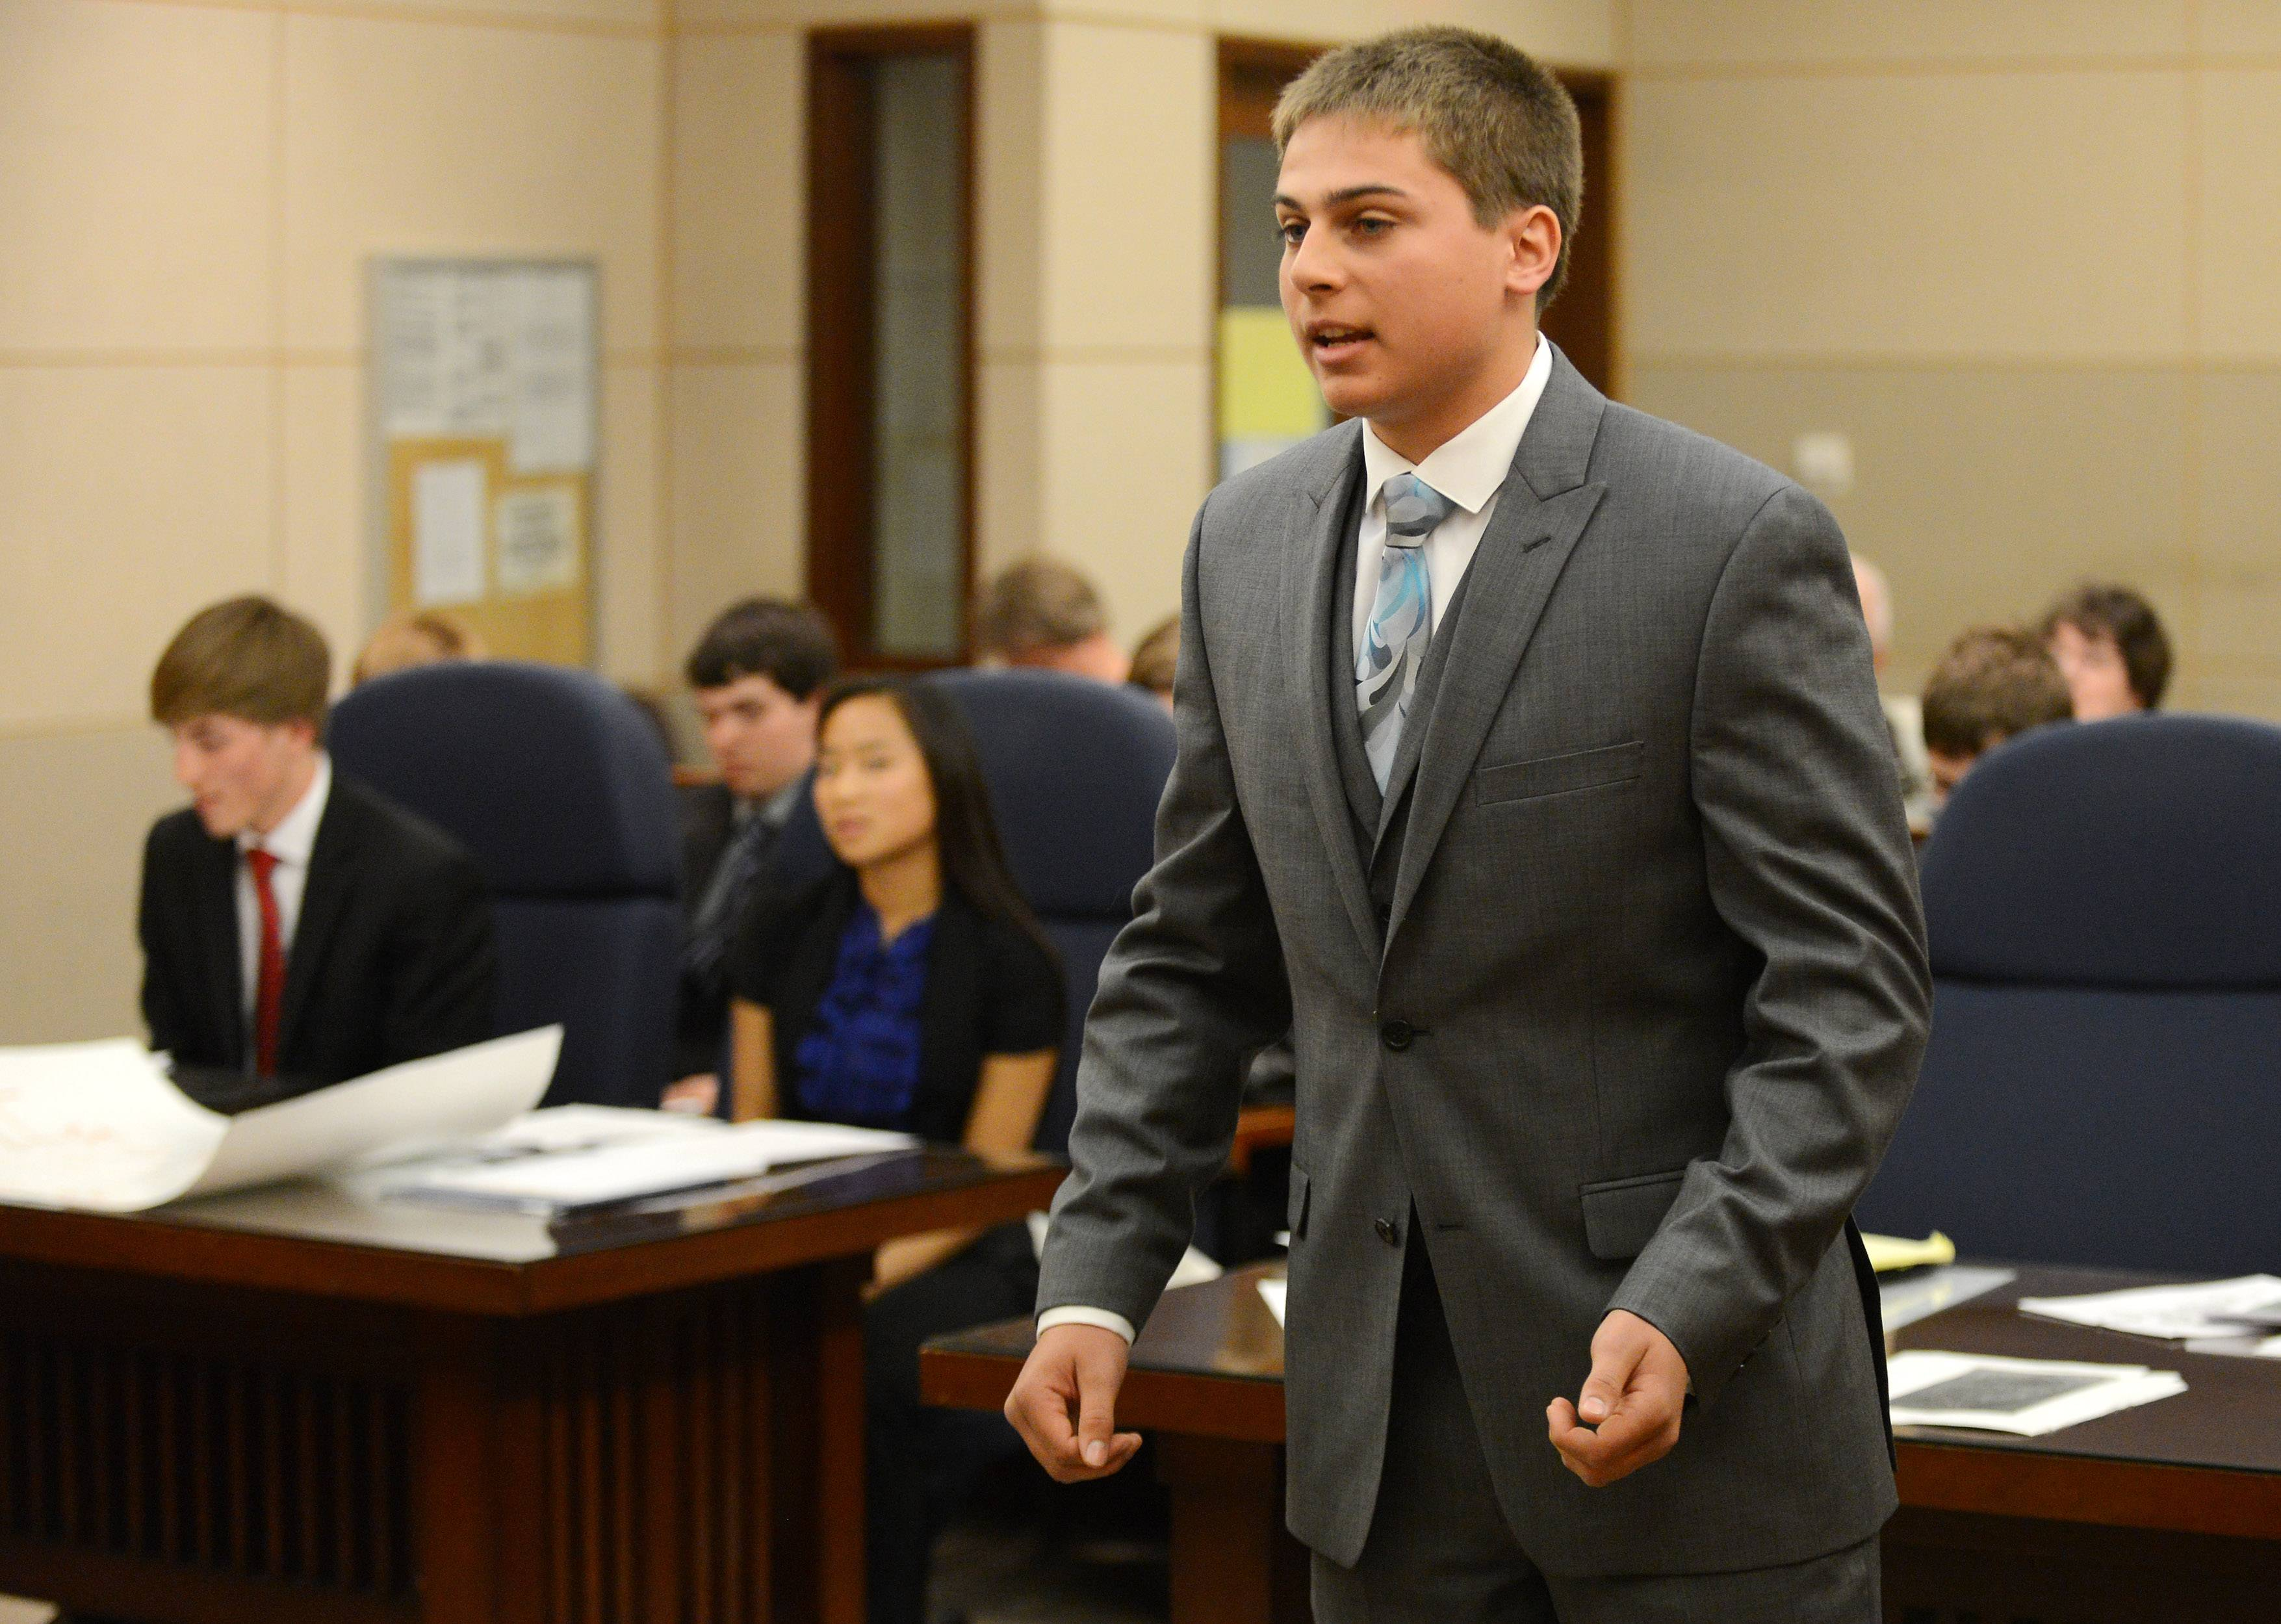 """Prosecutor"" Sean McCauley of Bartlett questions a witness as students from six high schools participate in mock trials Friday at the Kane County Courthouse in St. Charles."